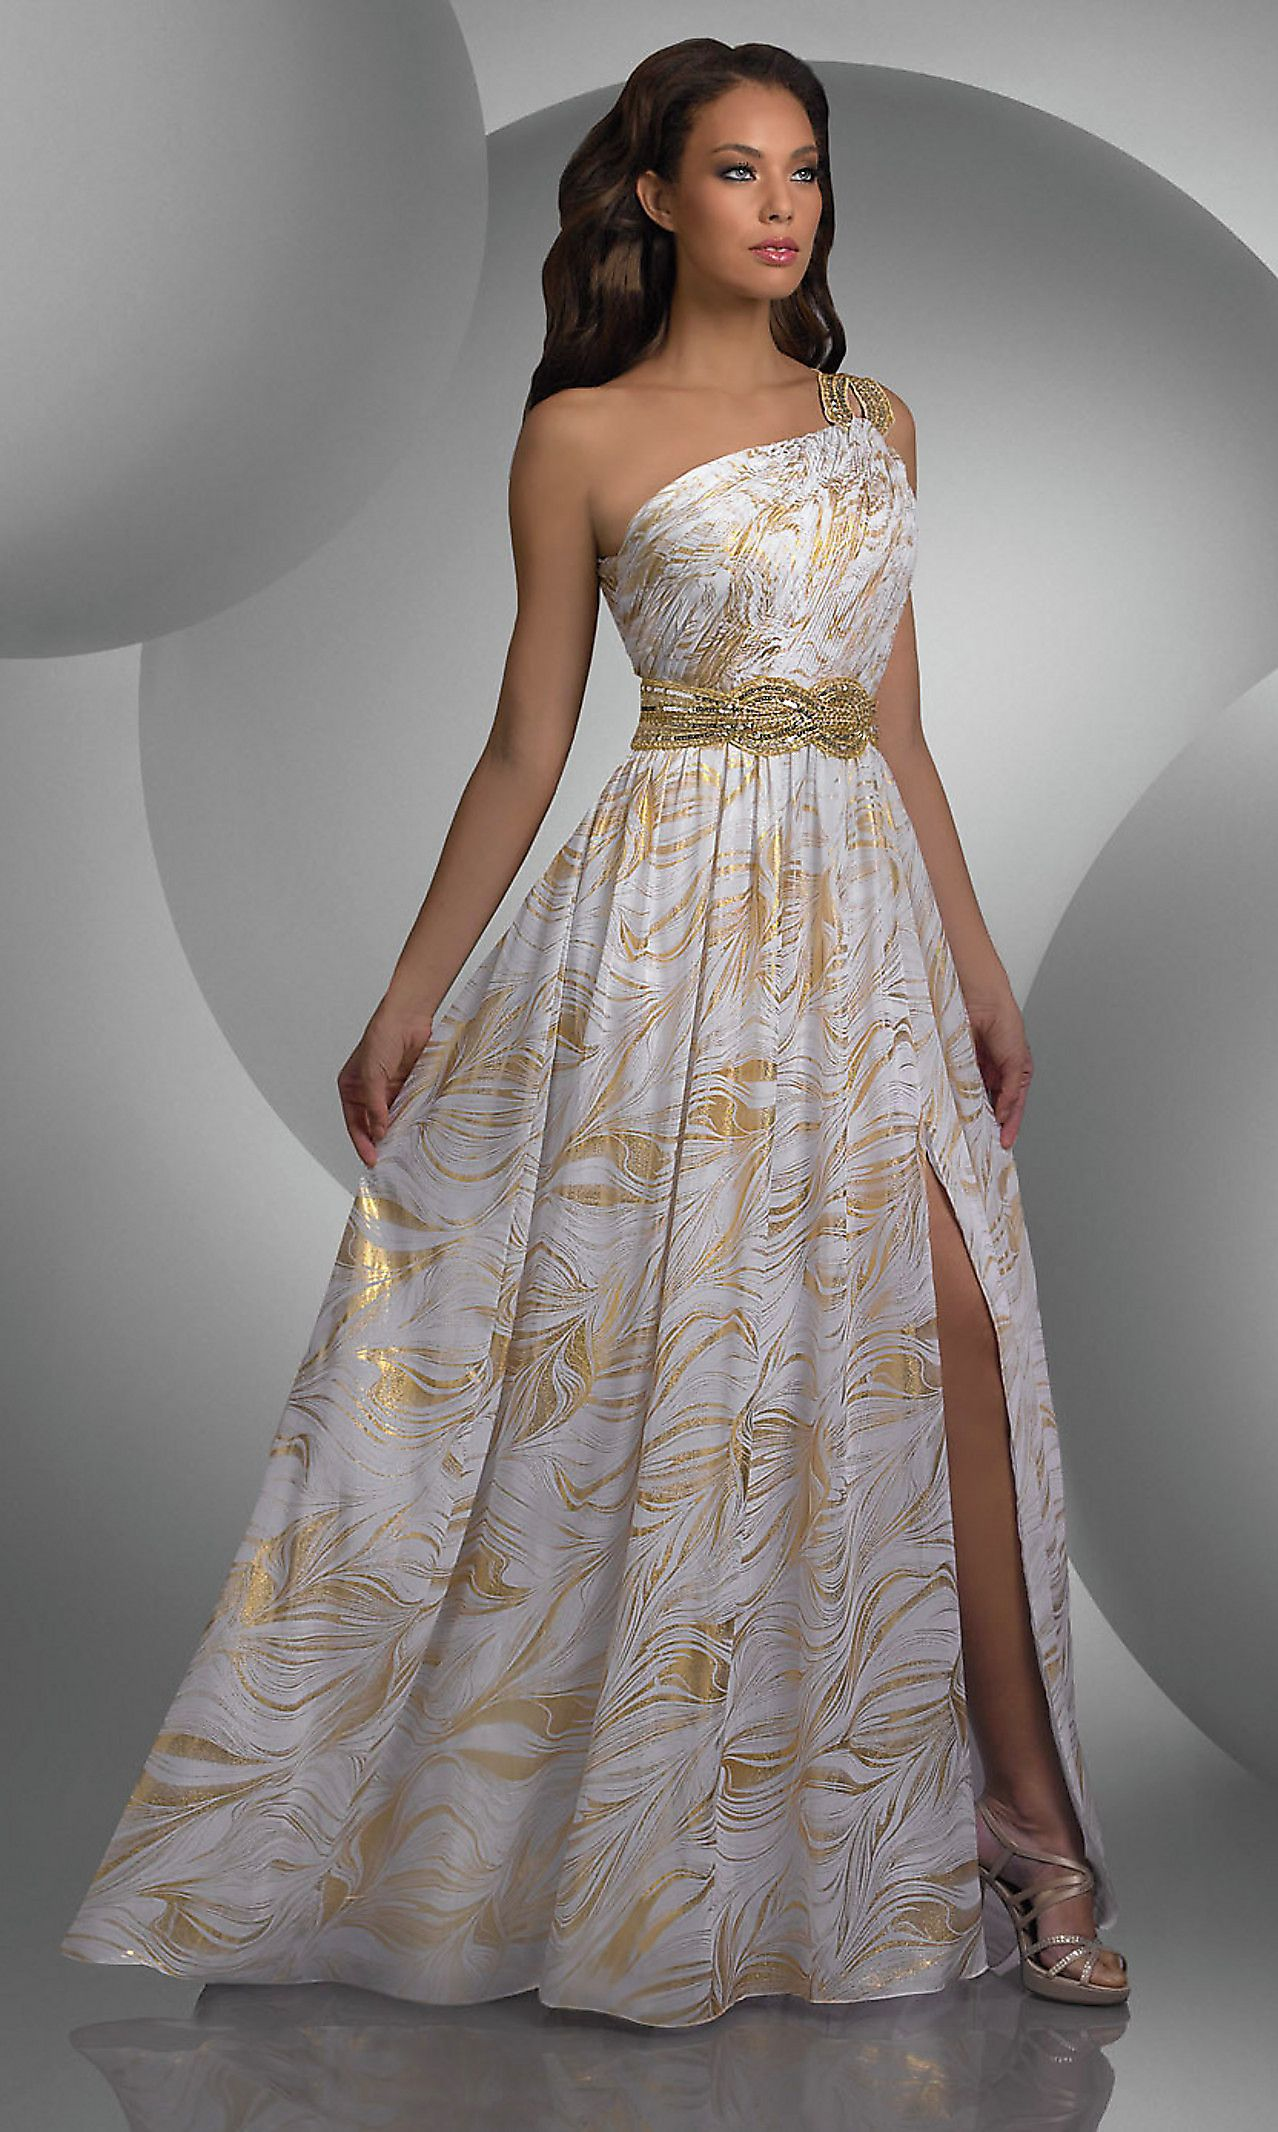 Gold belt for wedding dress  Pin by Oriahna Perez on Formal Events  Pinterest  Gold belts Prom